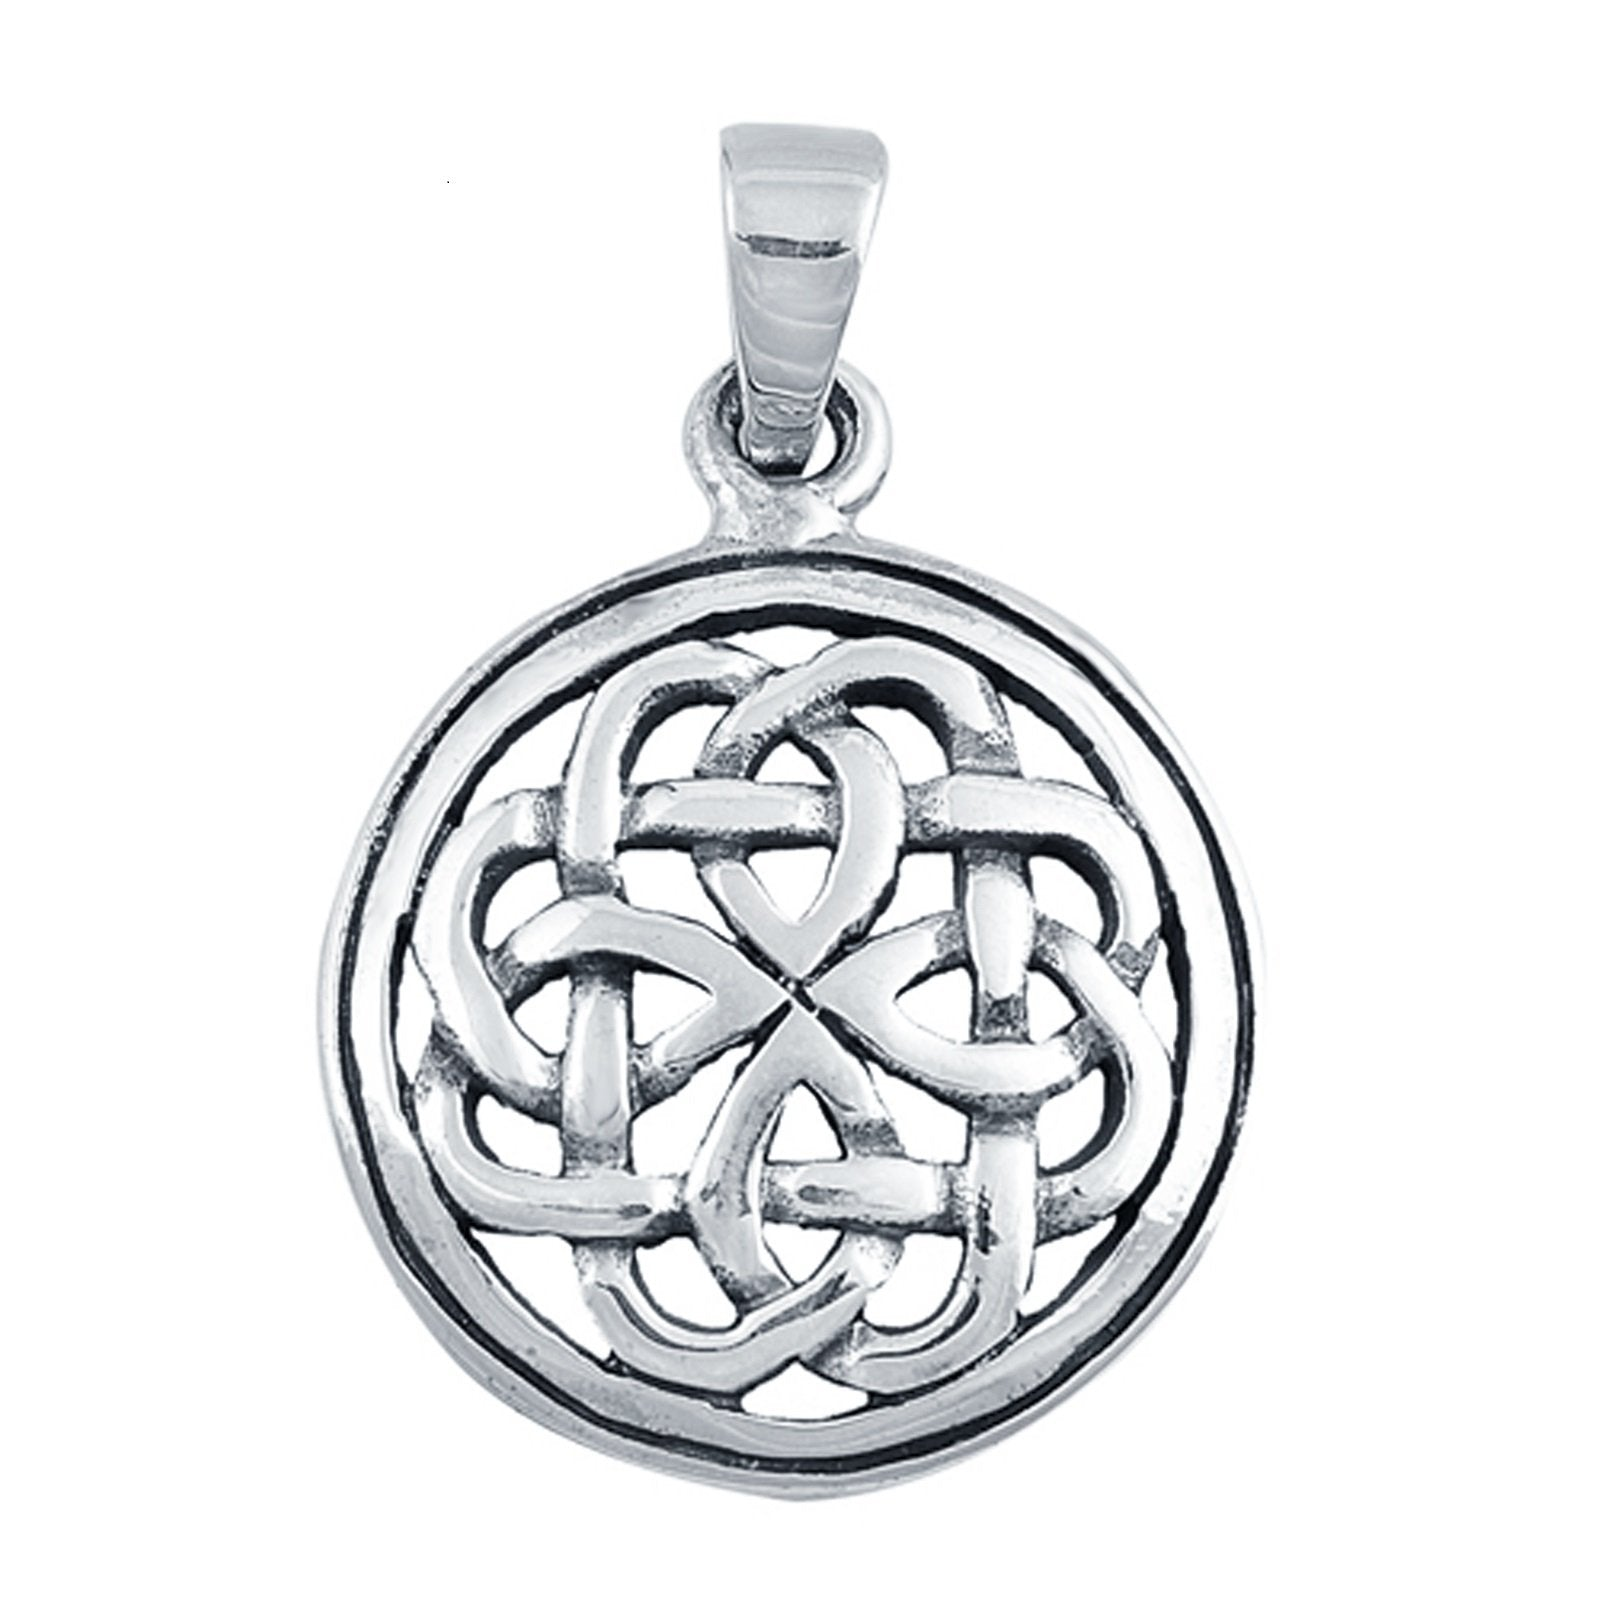 Silver Celtic Pendant Charm Fashion Jewelry 925 Sterling Silver